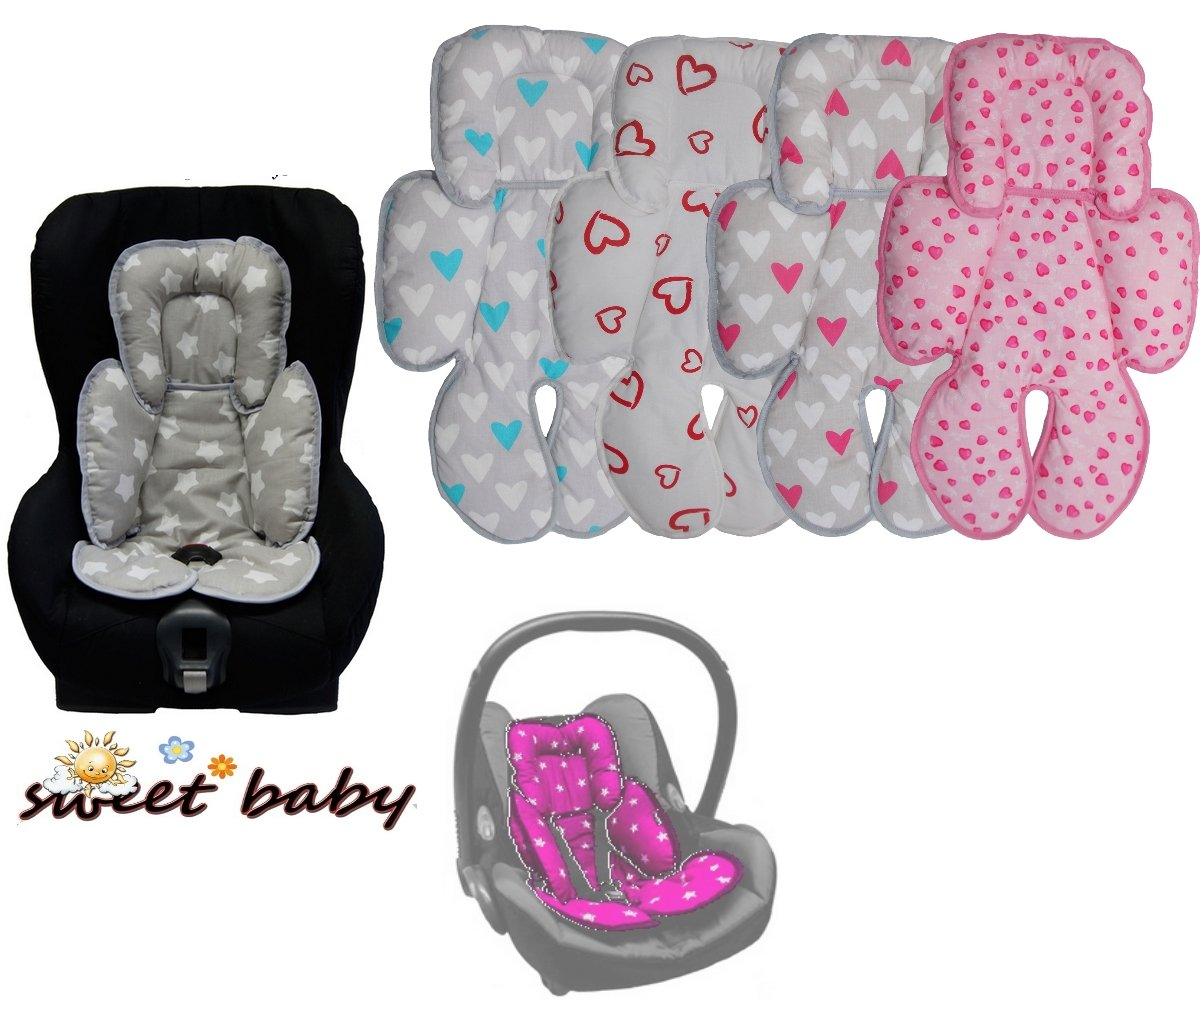 Sweet Baby * * Sleepy Car Seat Insert (Antial Lergikum Hearts * * Suitable for Baby Size 0/0+ and 1* * perfect for Maxi Cosi/Cybex etc. as well as Pram, Cot, etc.